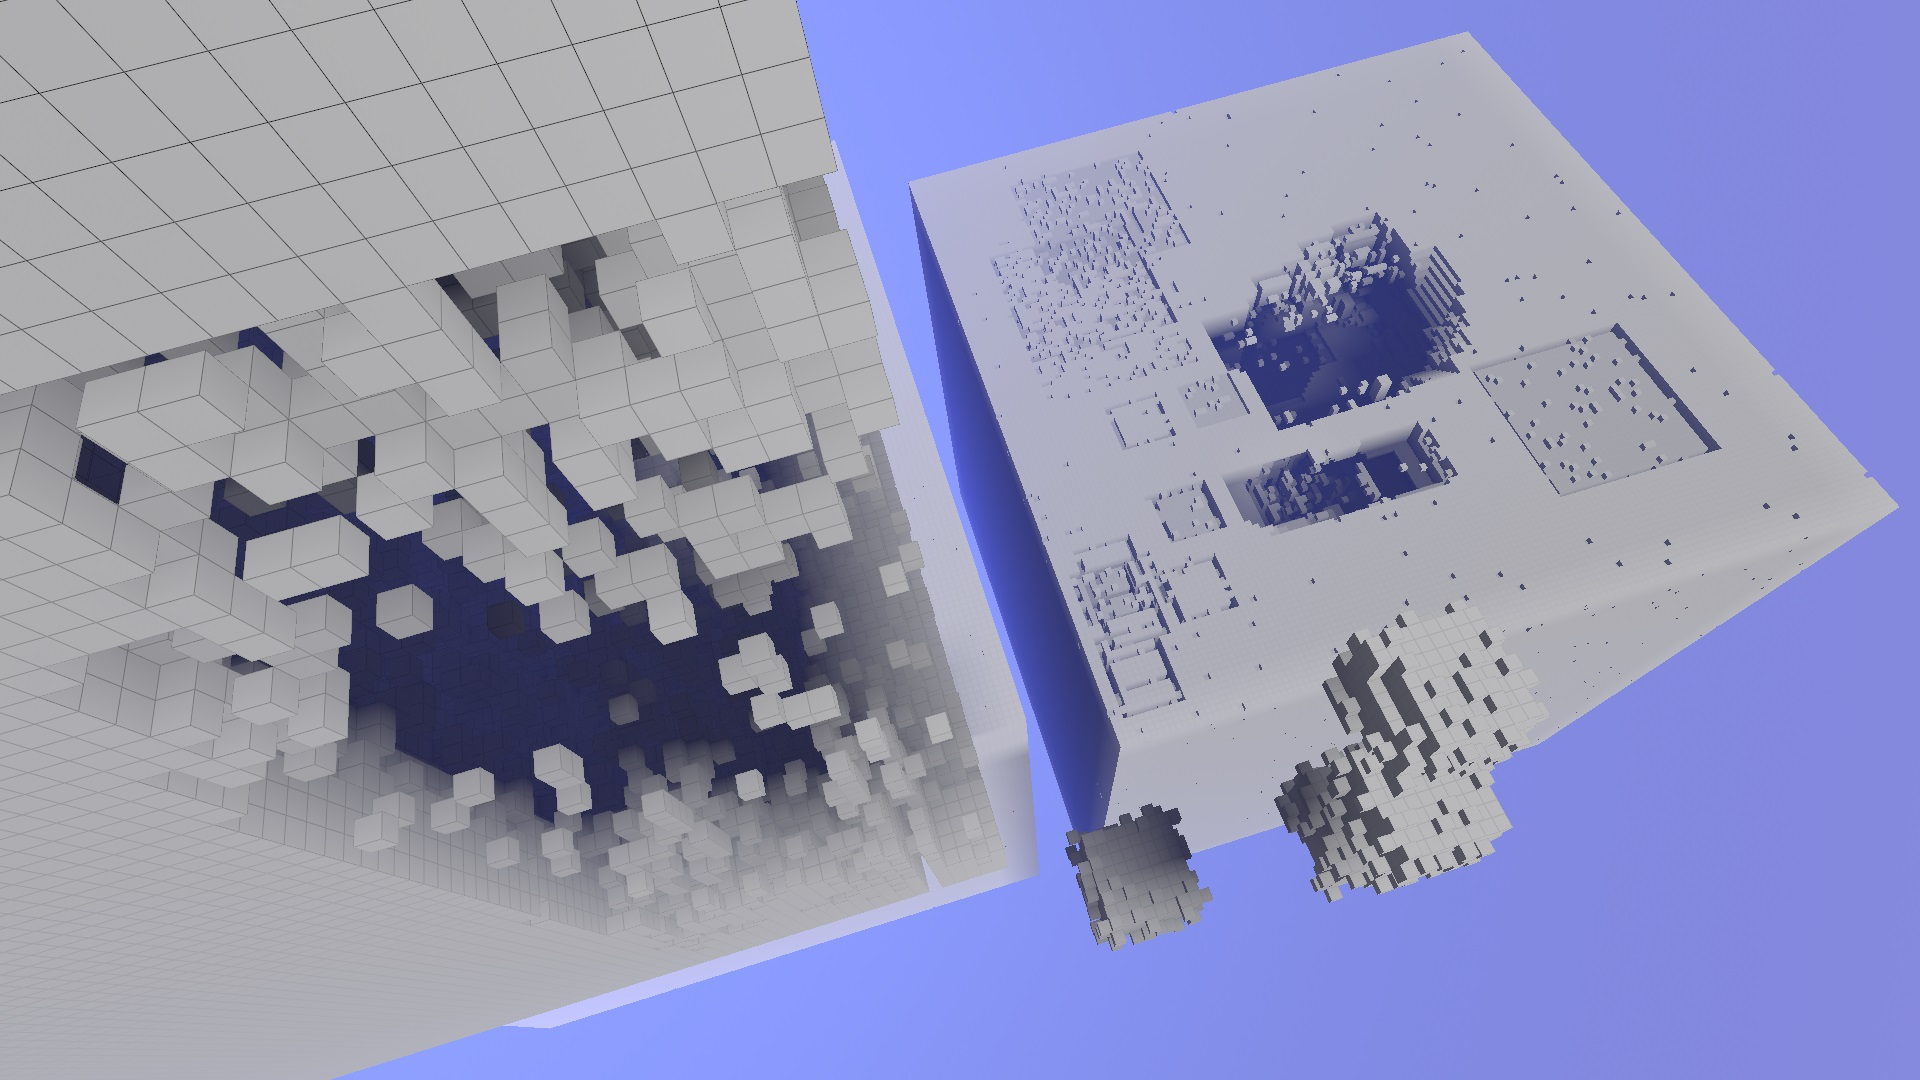 Avoyd voxel game prototype screenshot - First experiments with procedural generation of greeble